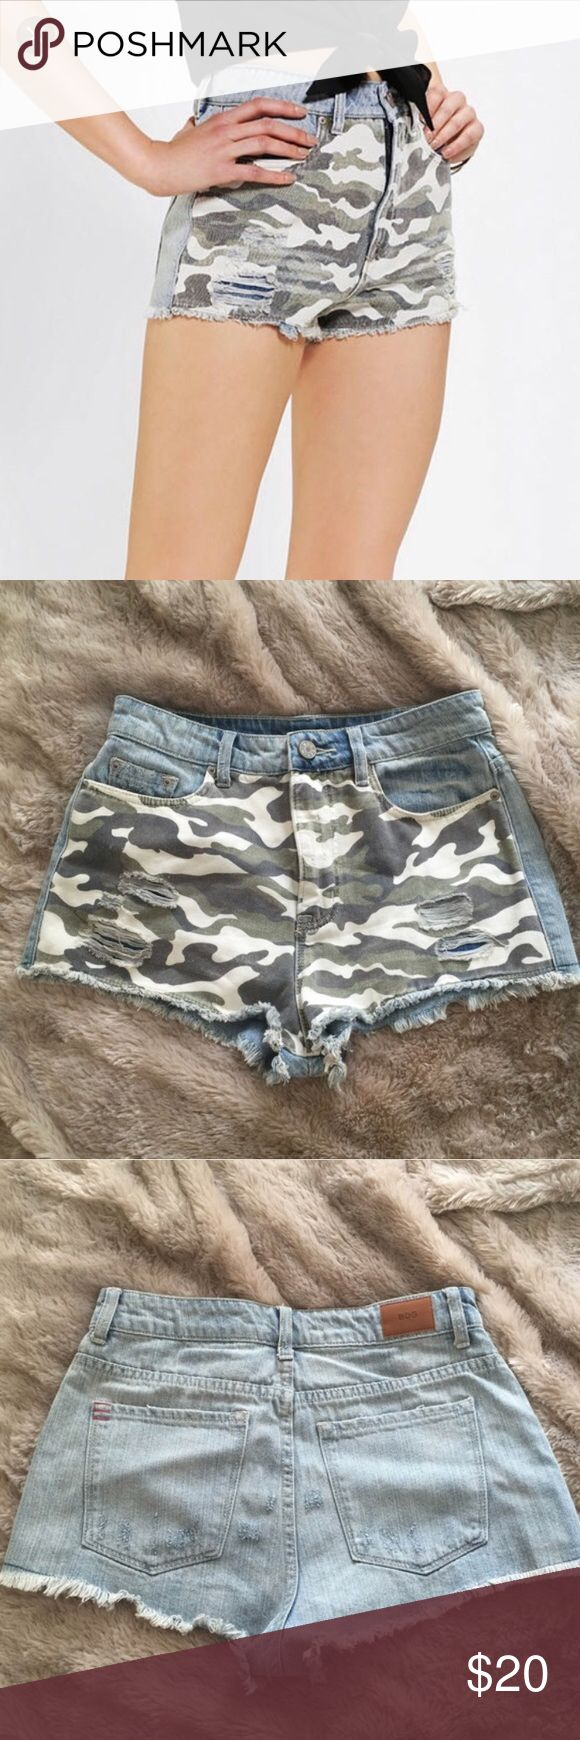 BDG High Rise Army Shorts BDG High Rise Dree Cheeky, Army shorts from Urban Outfitters, perfect pre-used condition, worn once! Urban Outfitters Shorts Jean Shorts